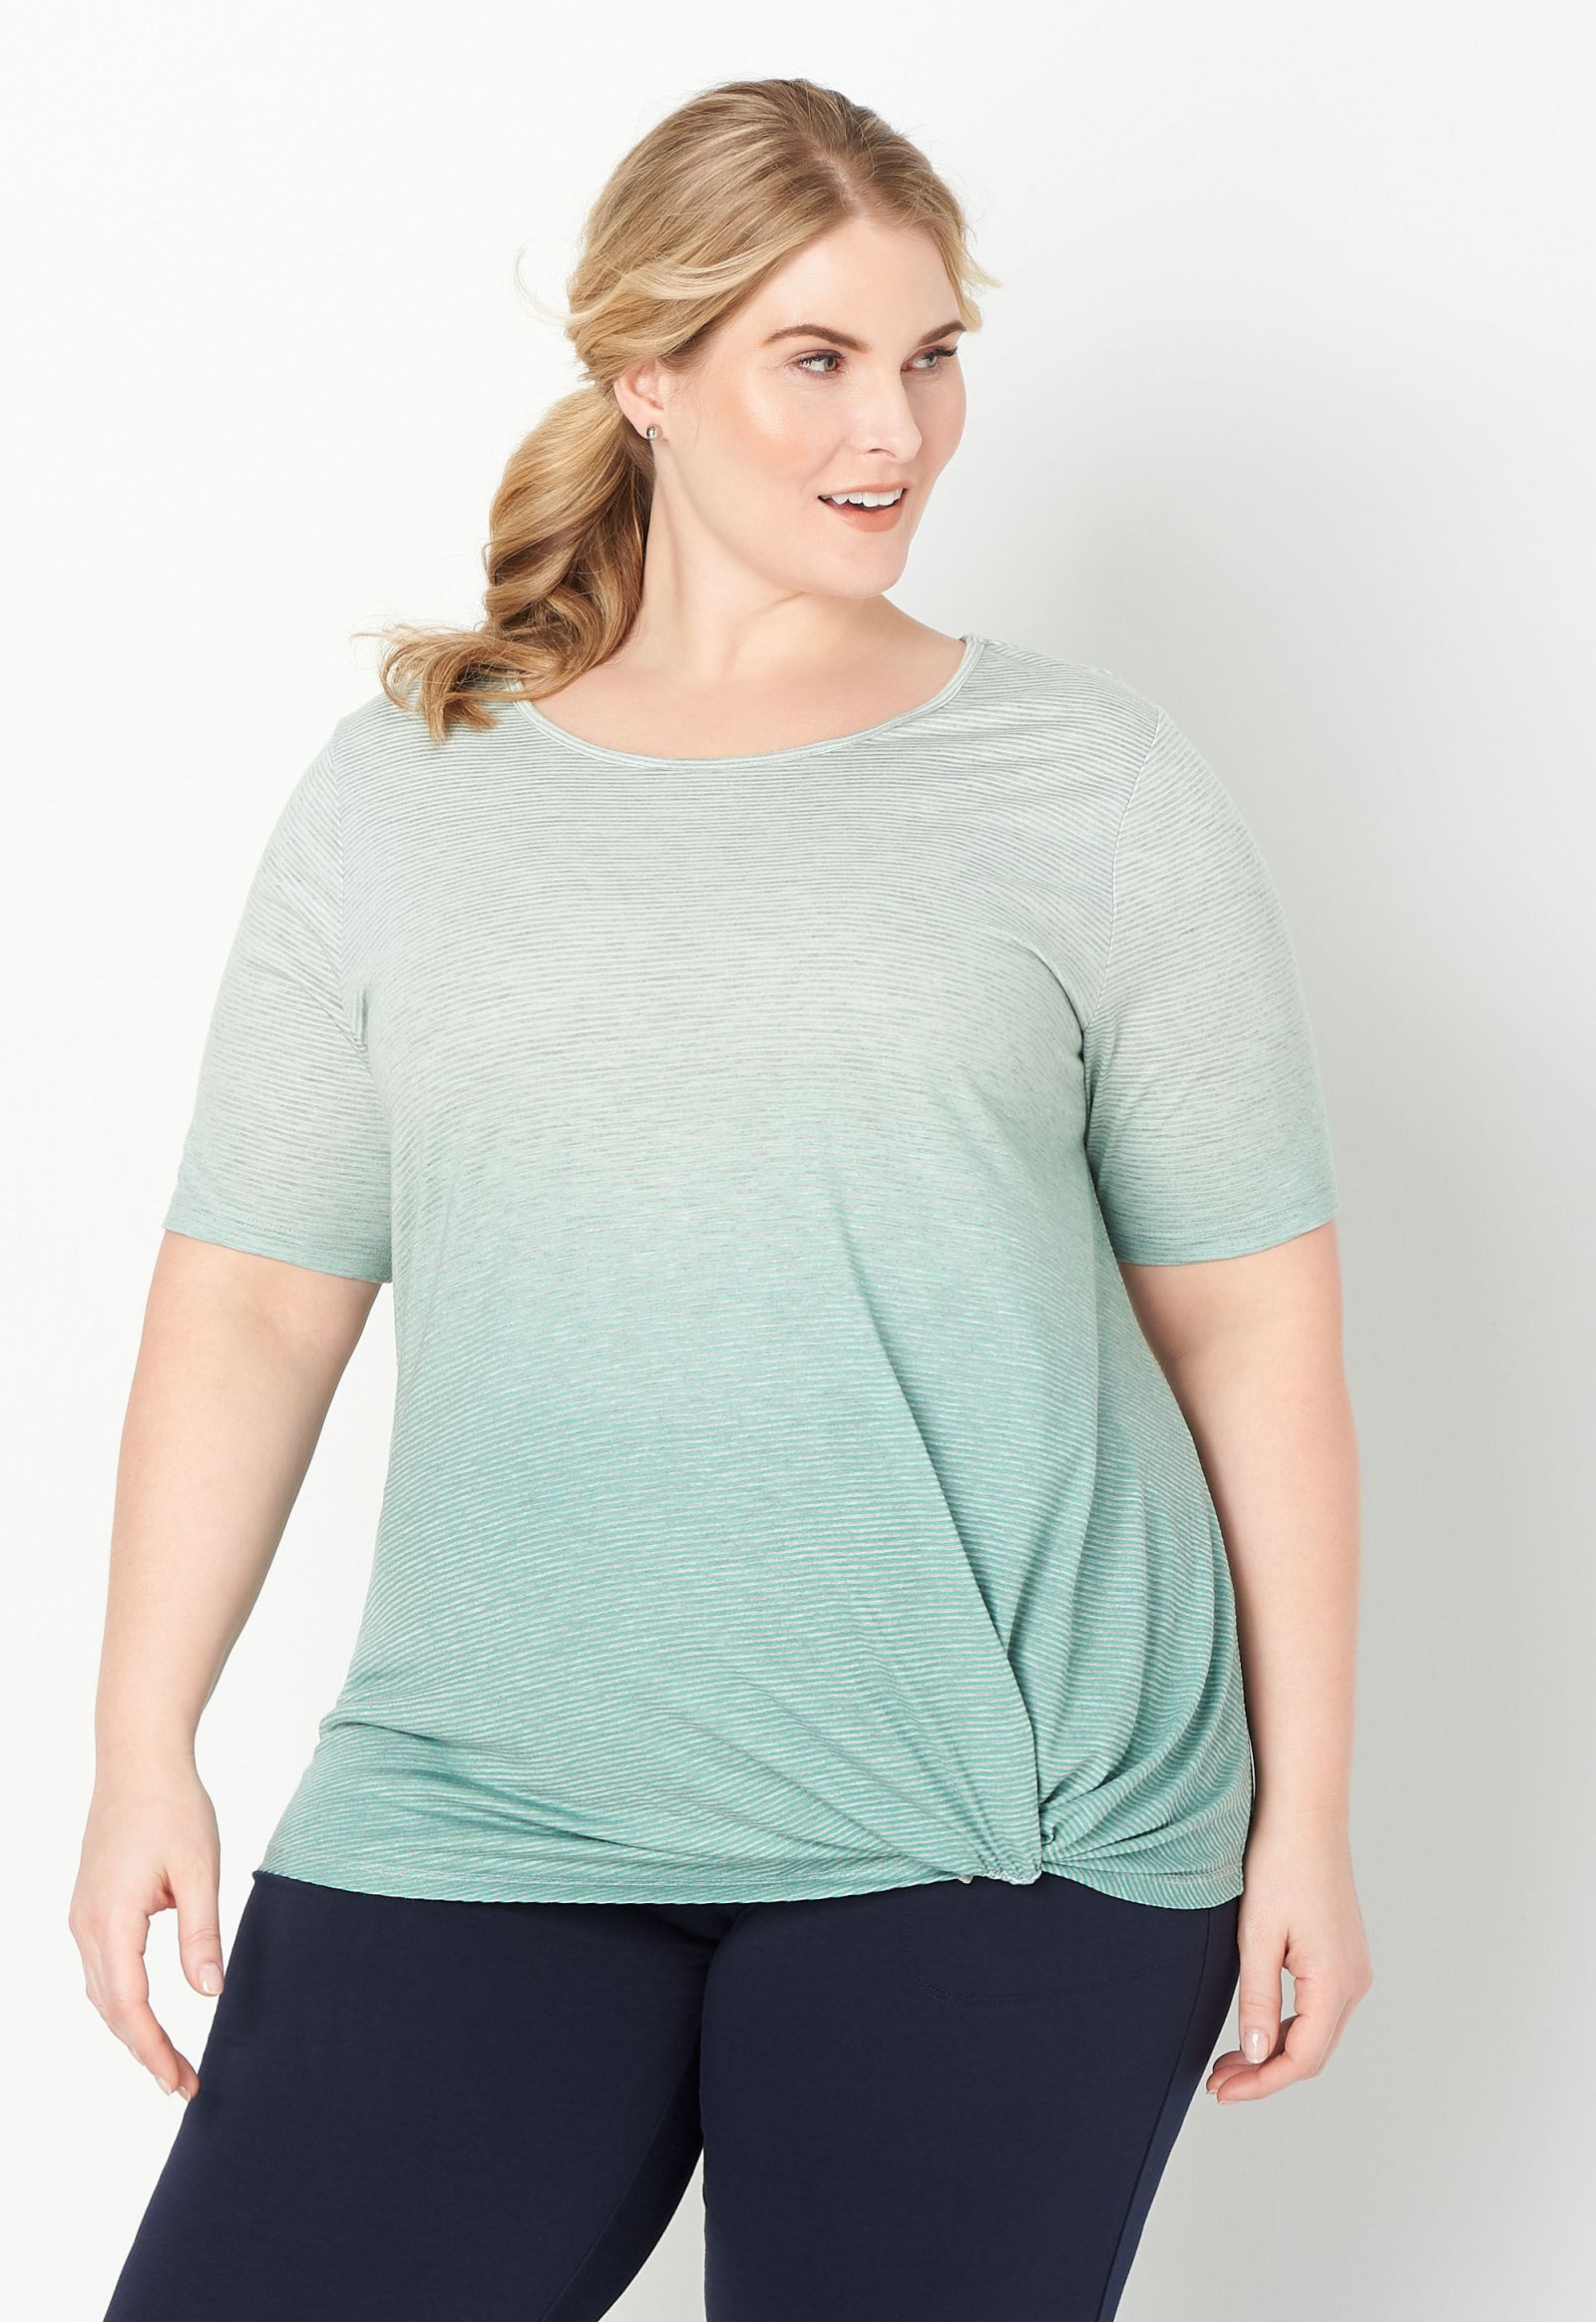 Relaxed Restyled Plus Size Ombre Tee 2